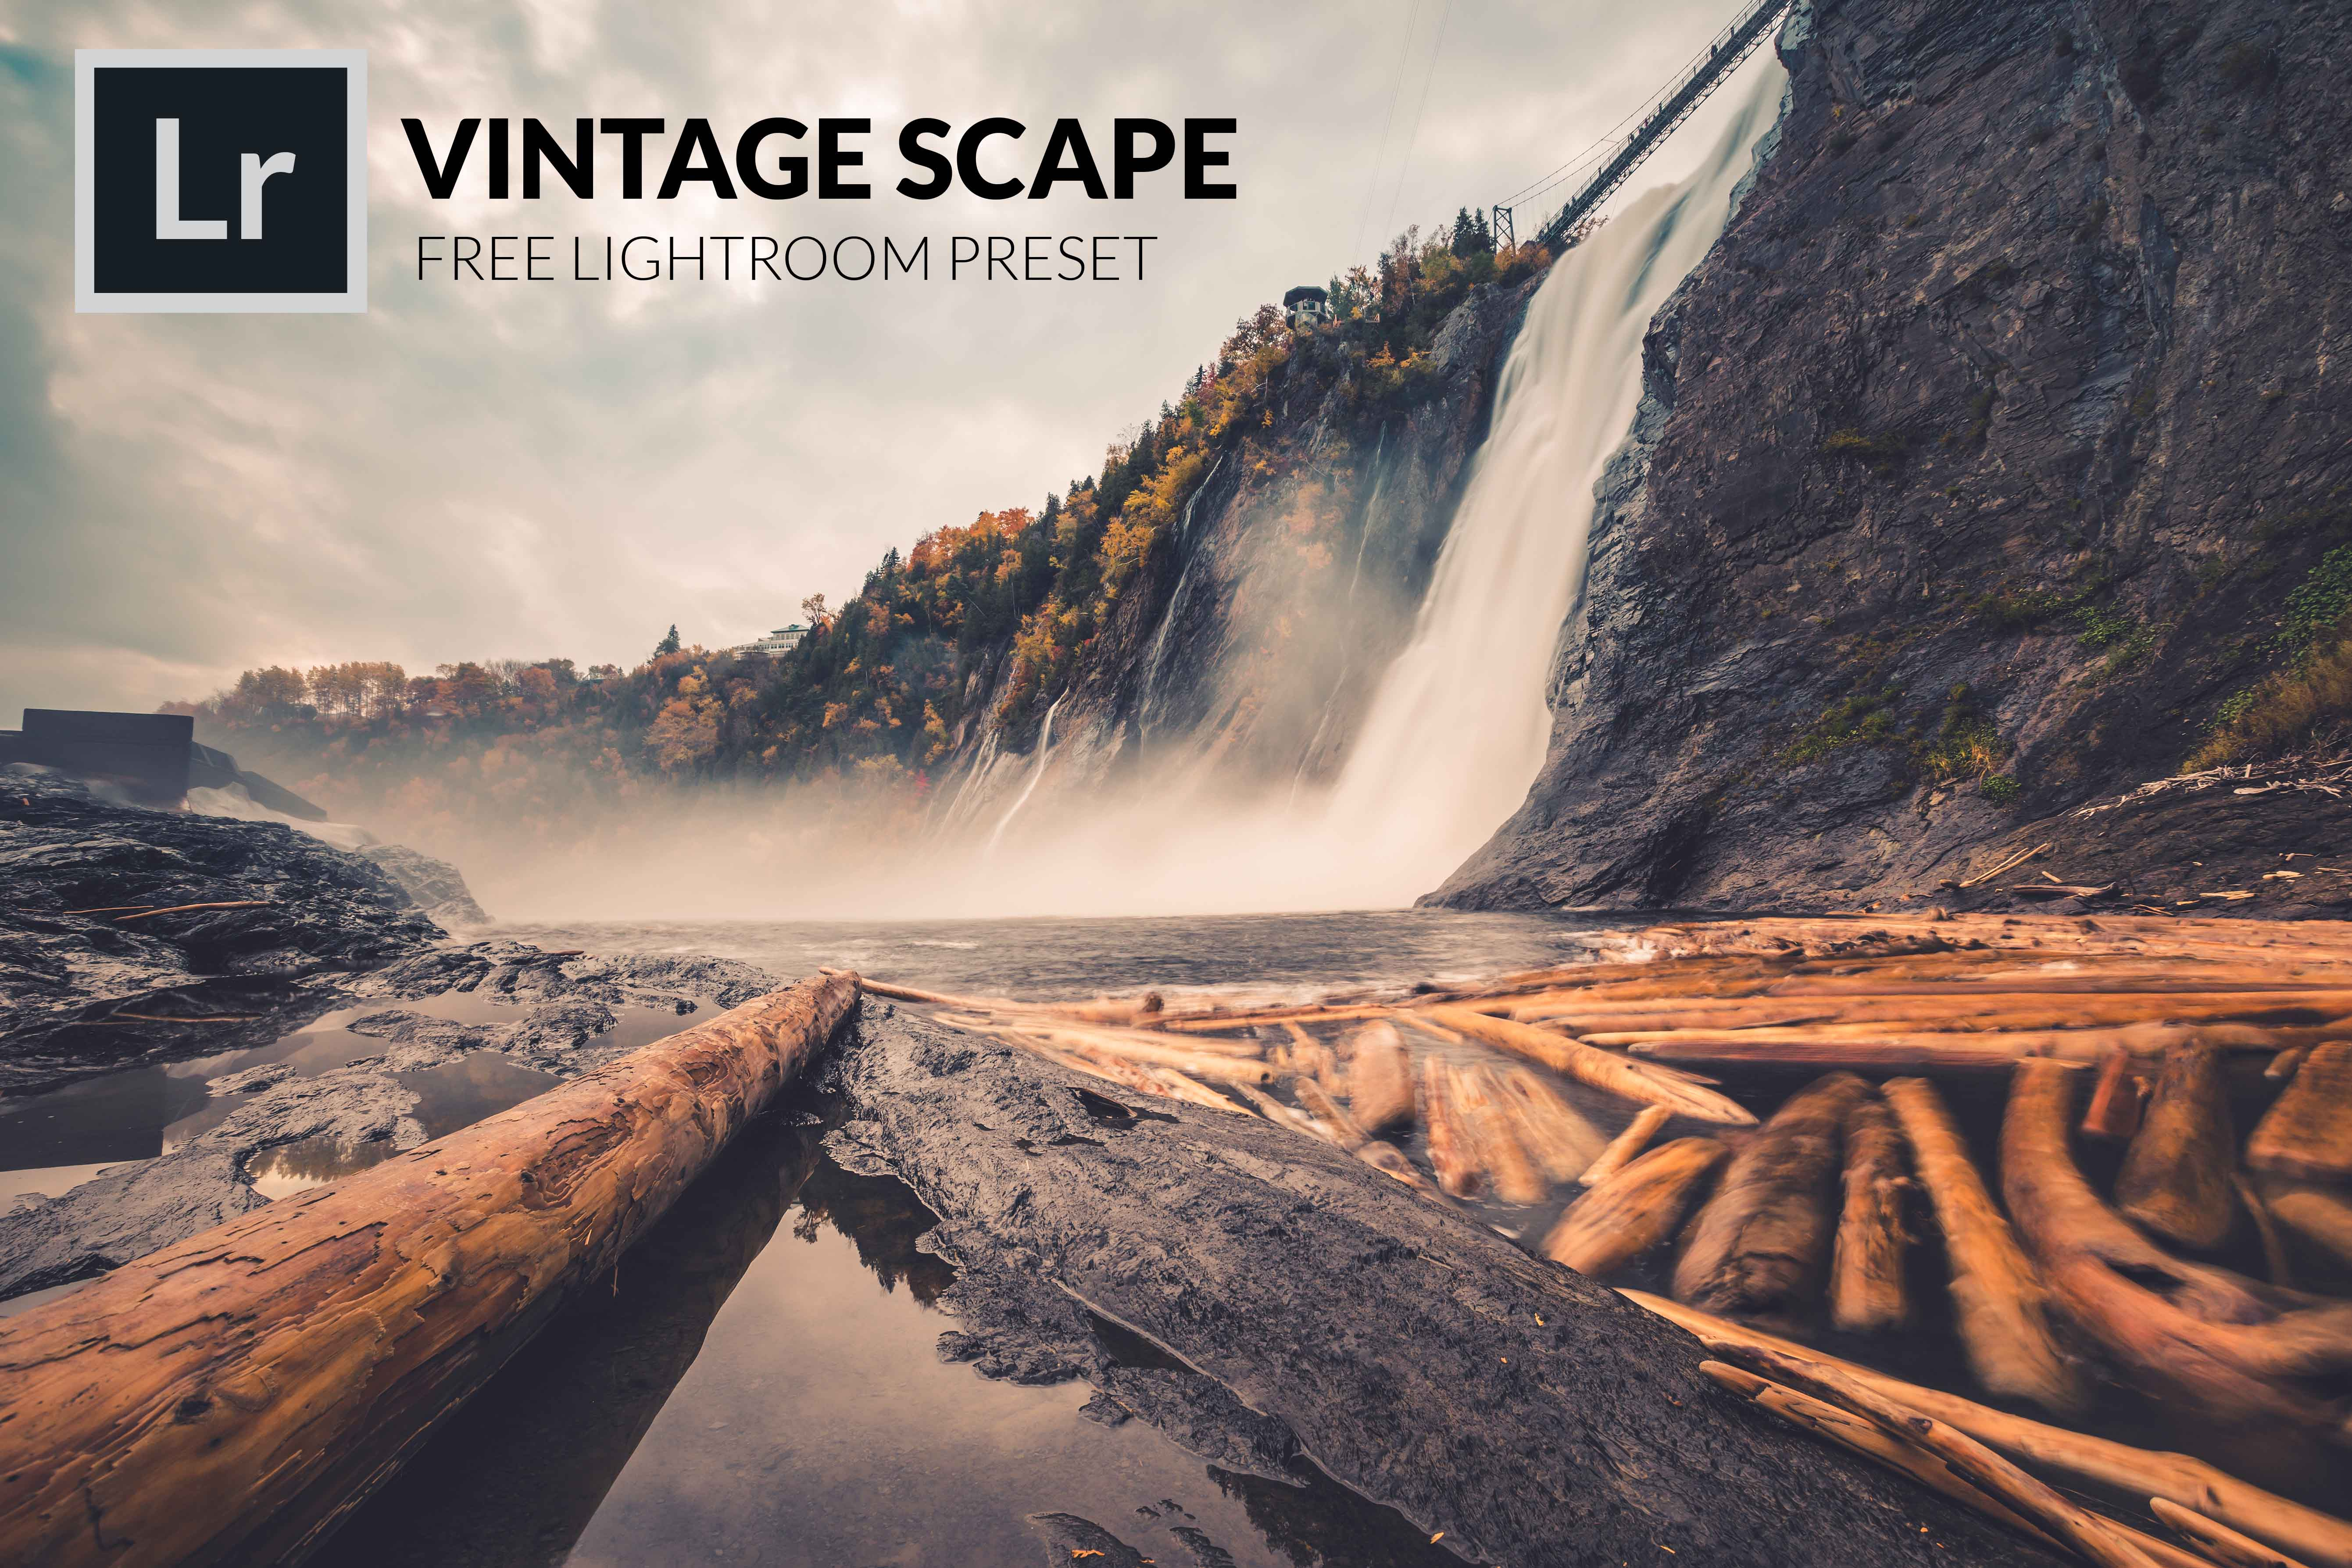 100 Free Lightroom Presets To Download